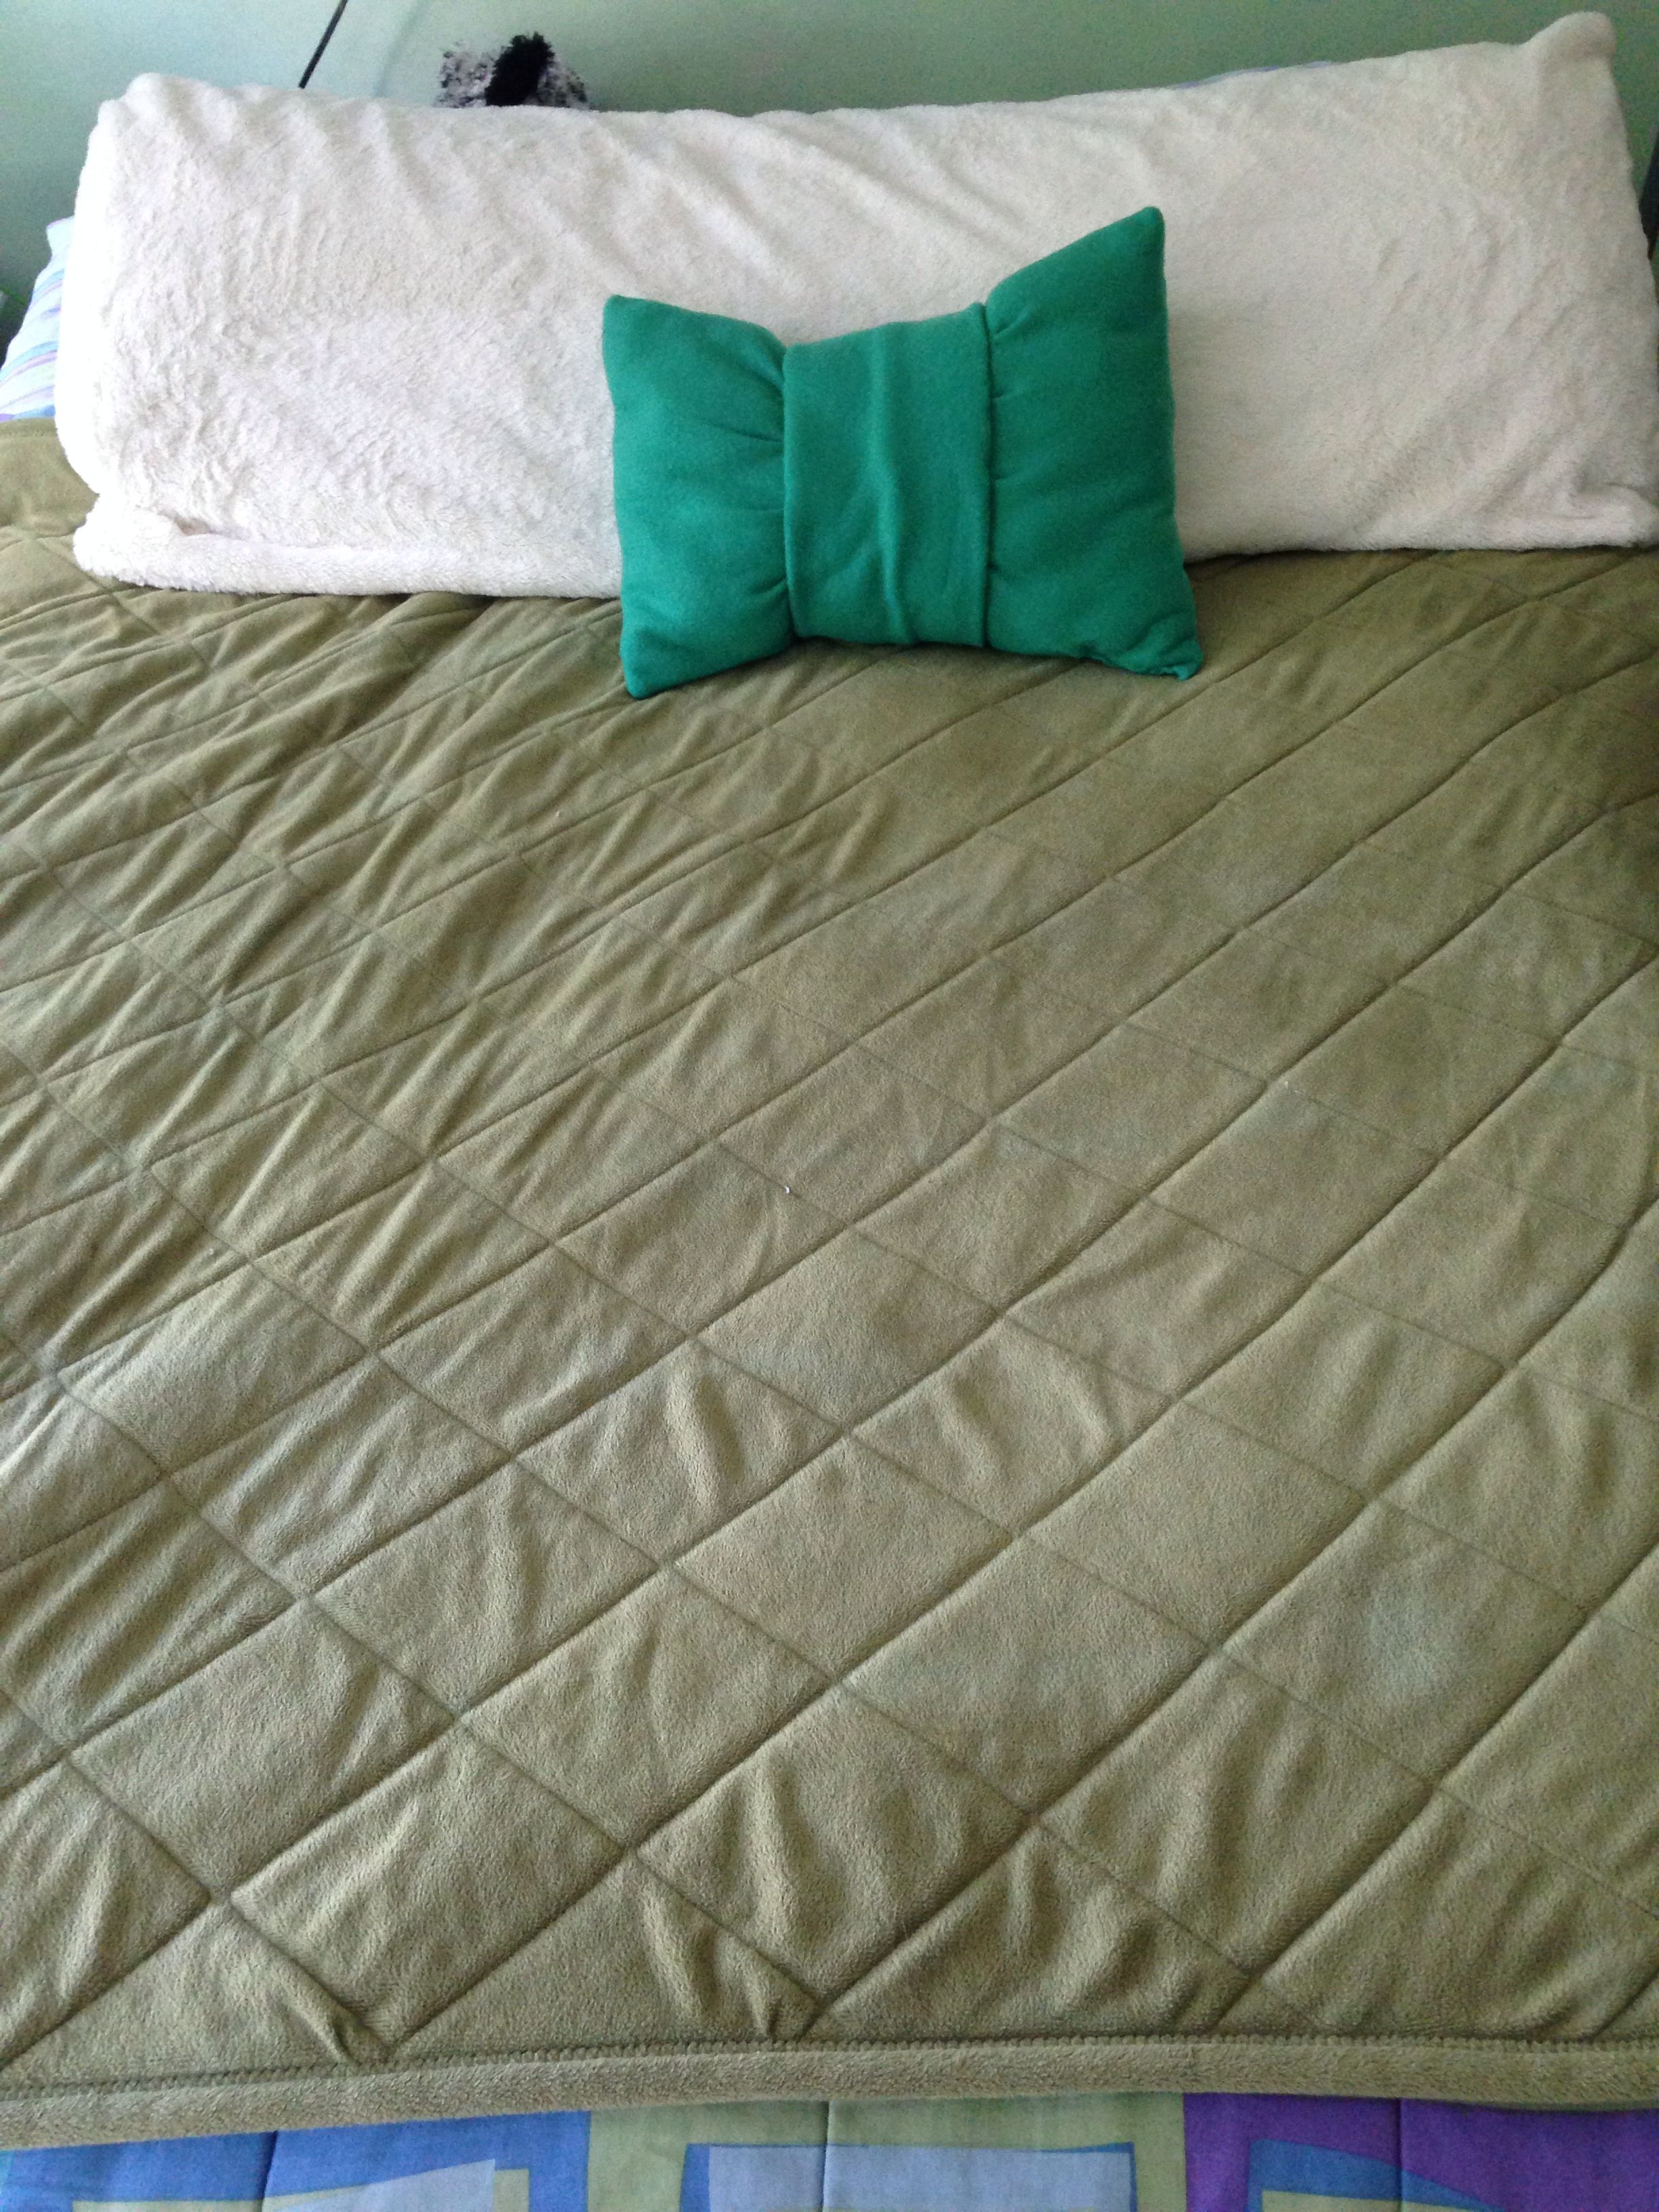 Diy bow pillow i made crafty time pinterest bow pillows and